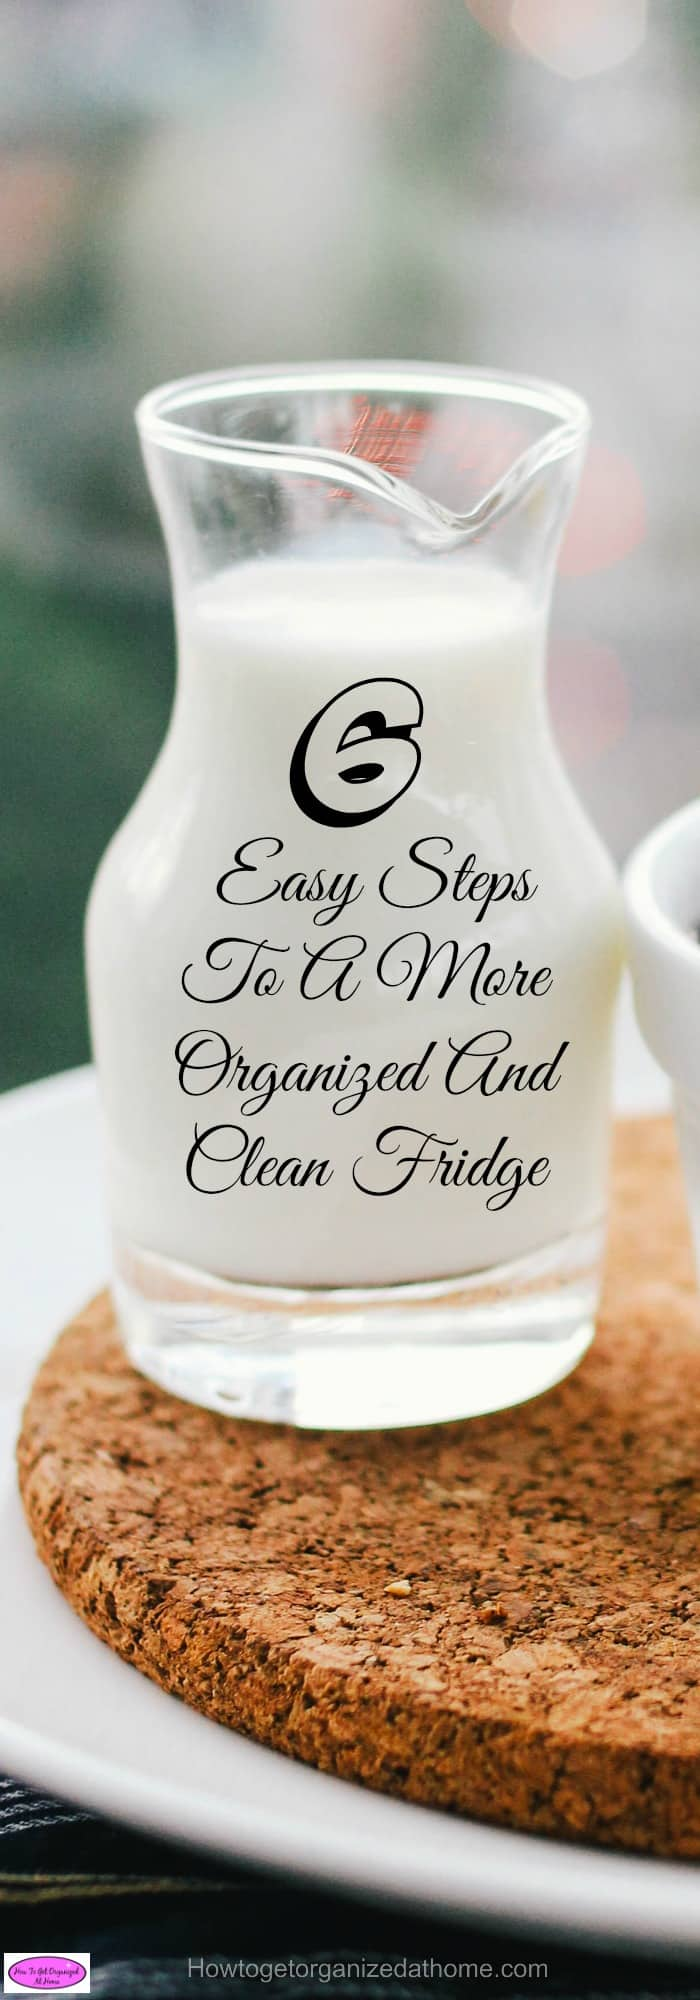 Having an organized and clean fridge is something that you should work on every day. You don't need labels or storage bins, the choice is yours!